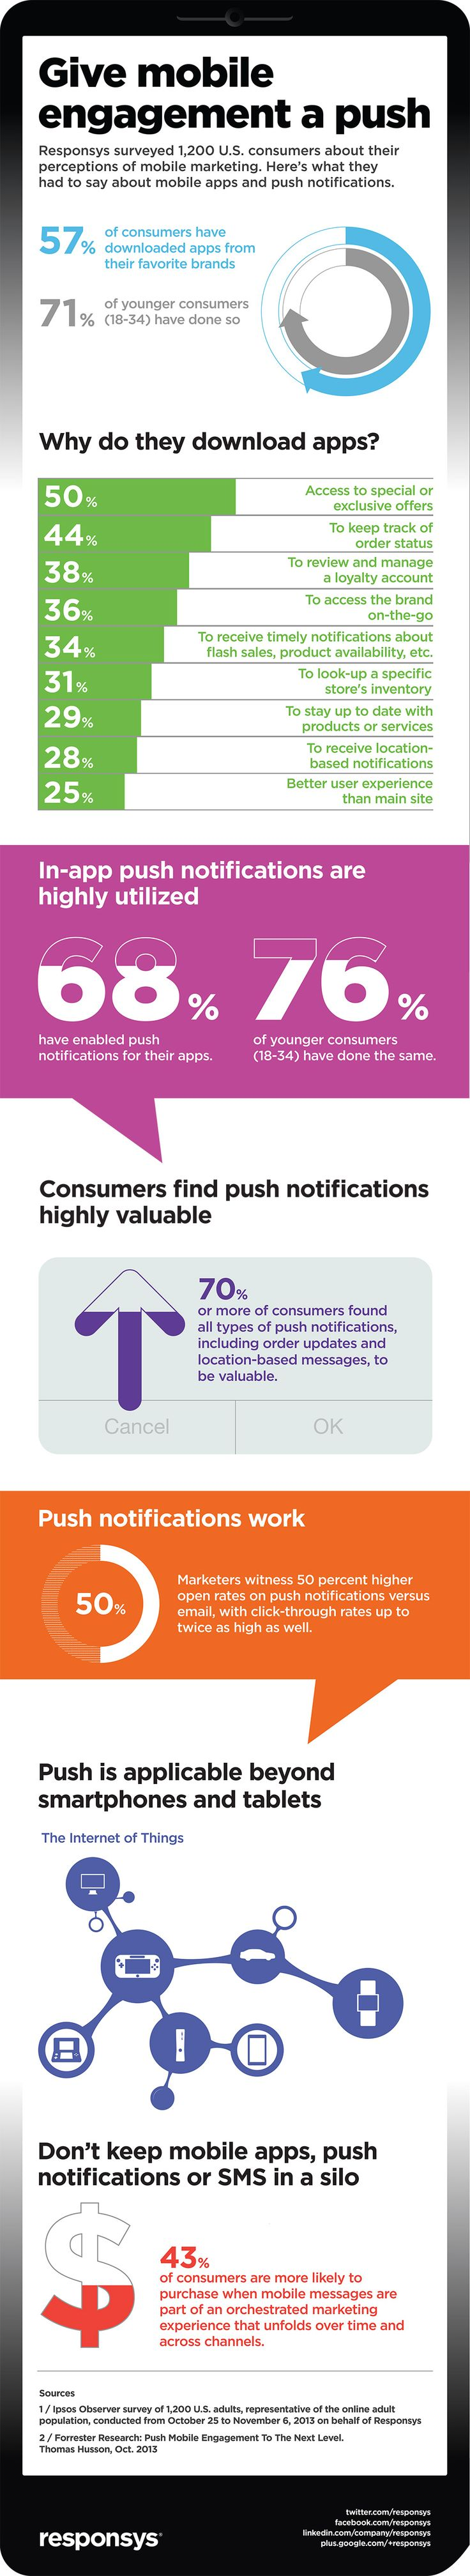 #MobileMarketing and the Magic of Push Notifications (Infographic)